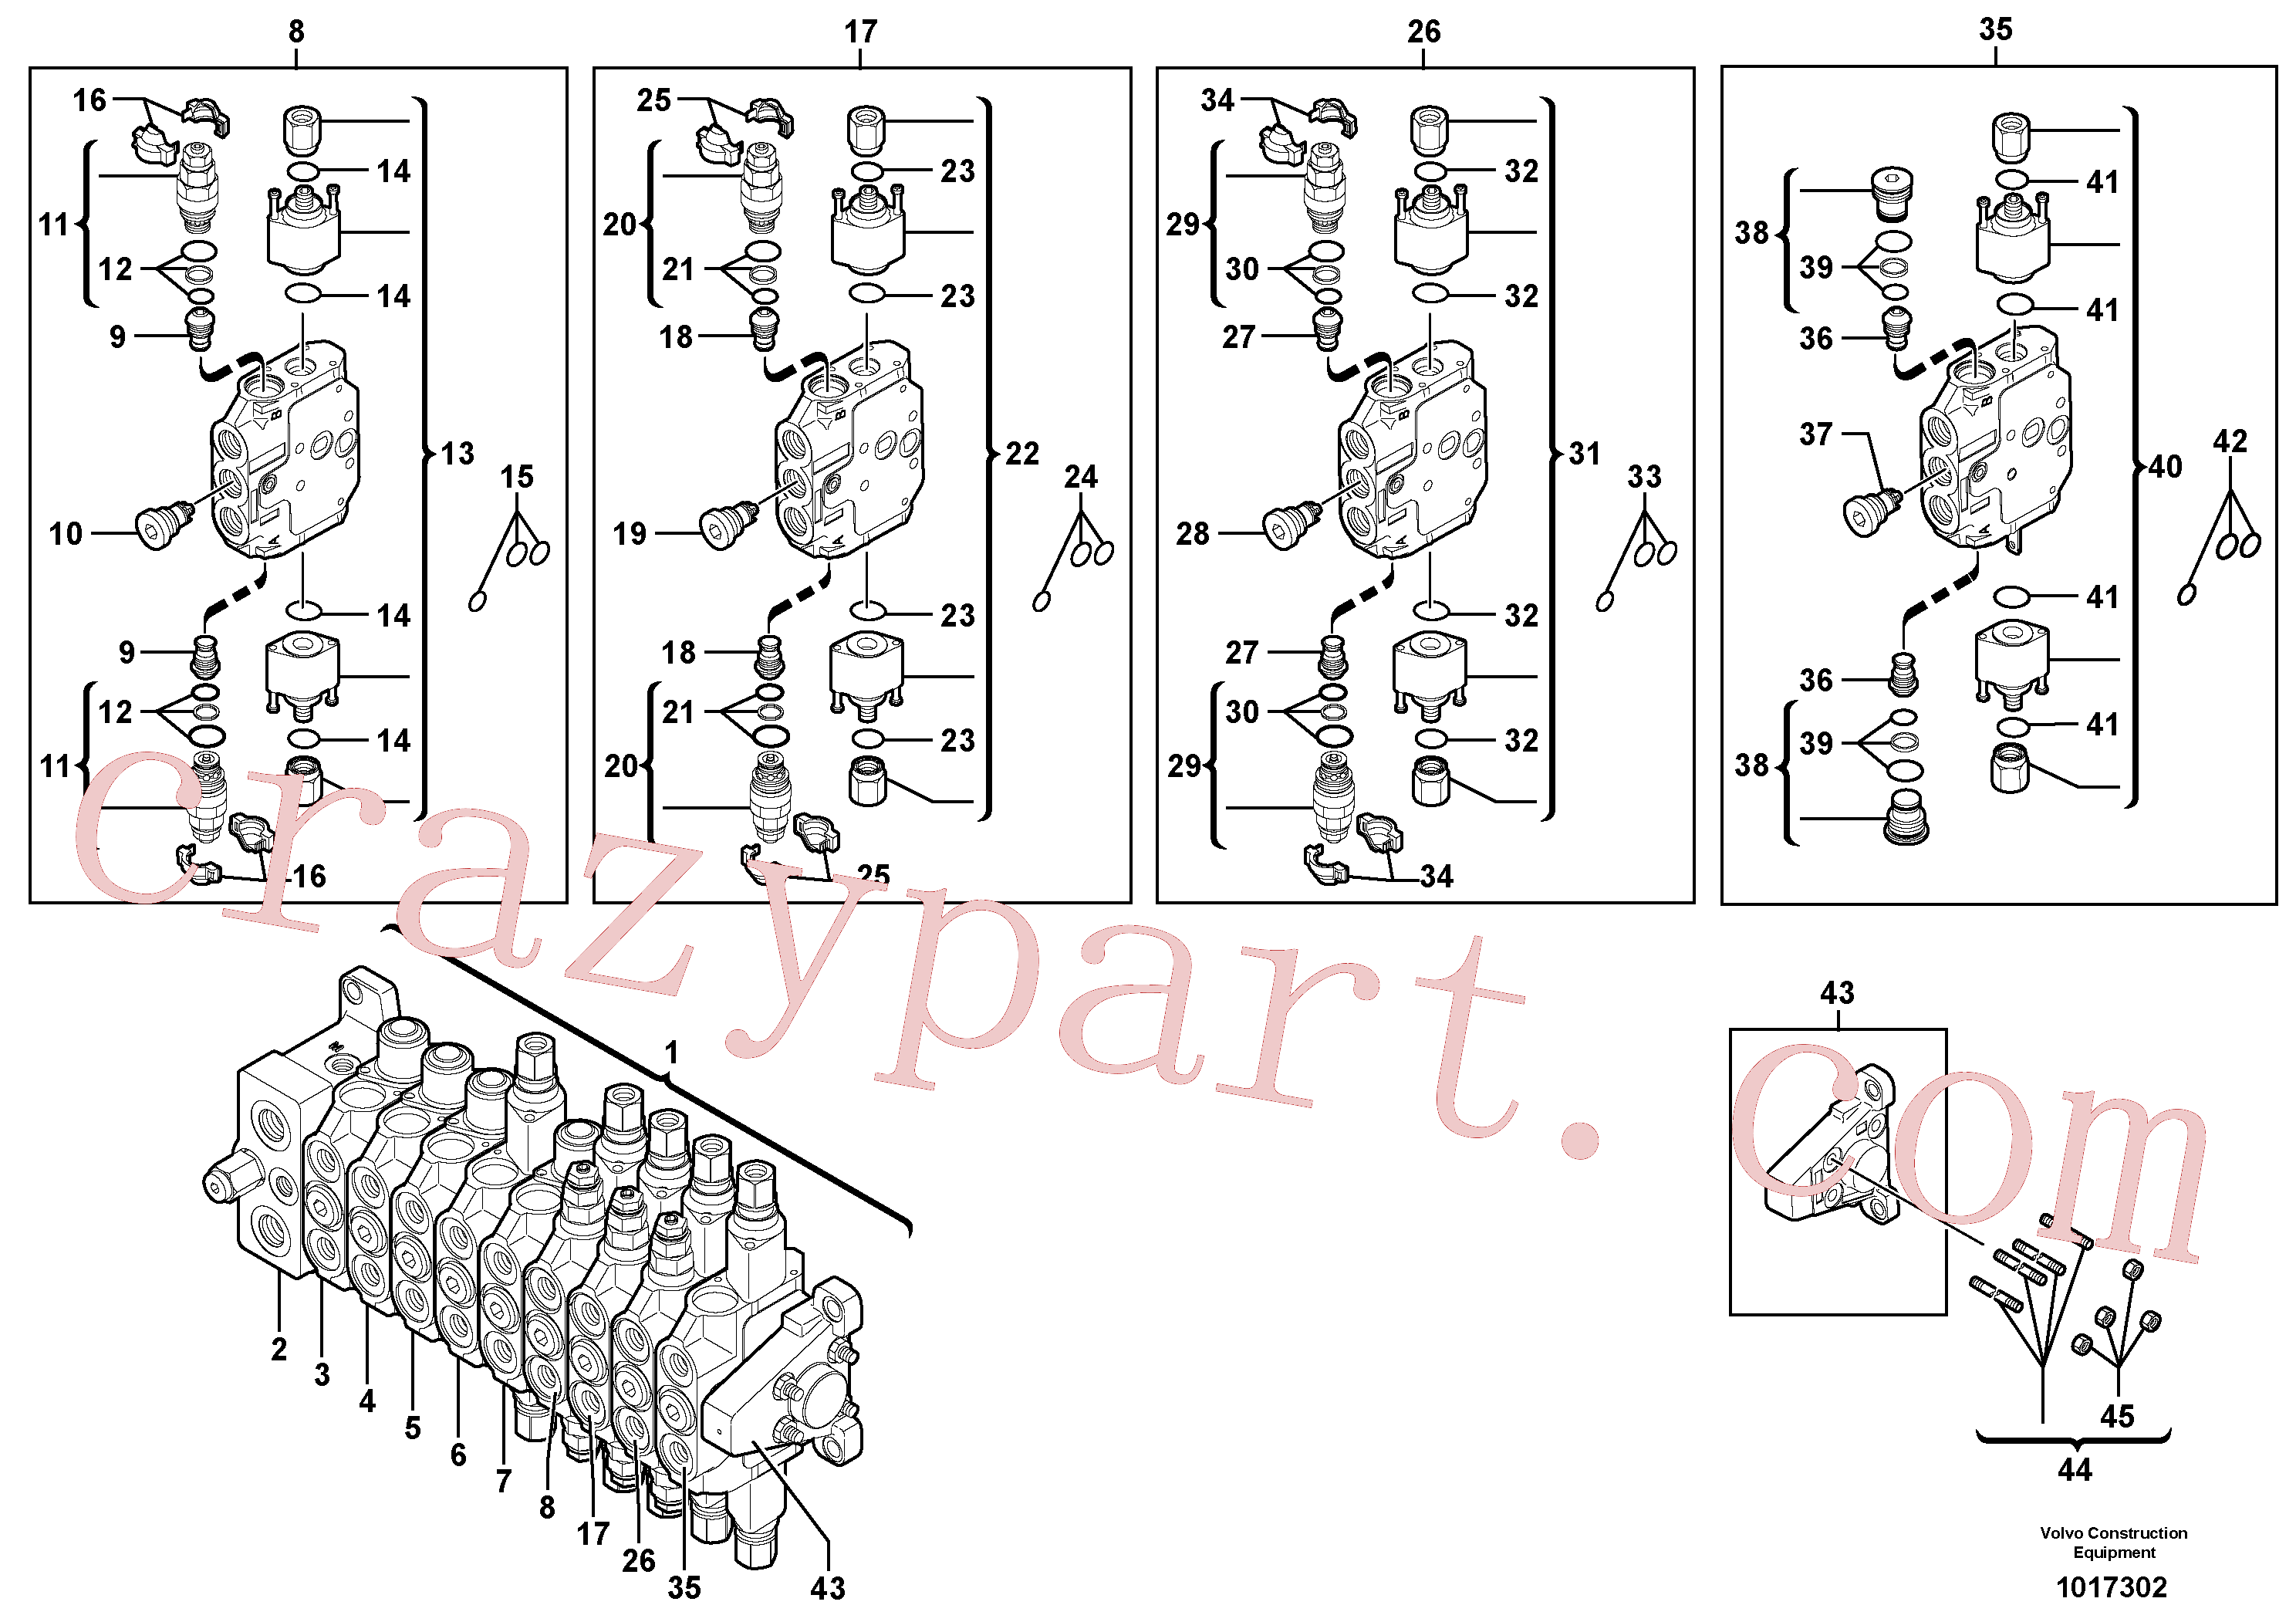 VOE11715567 for Volvo Control valve : 9 spools(1017302 assembly)